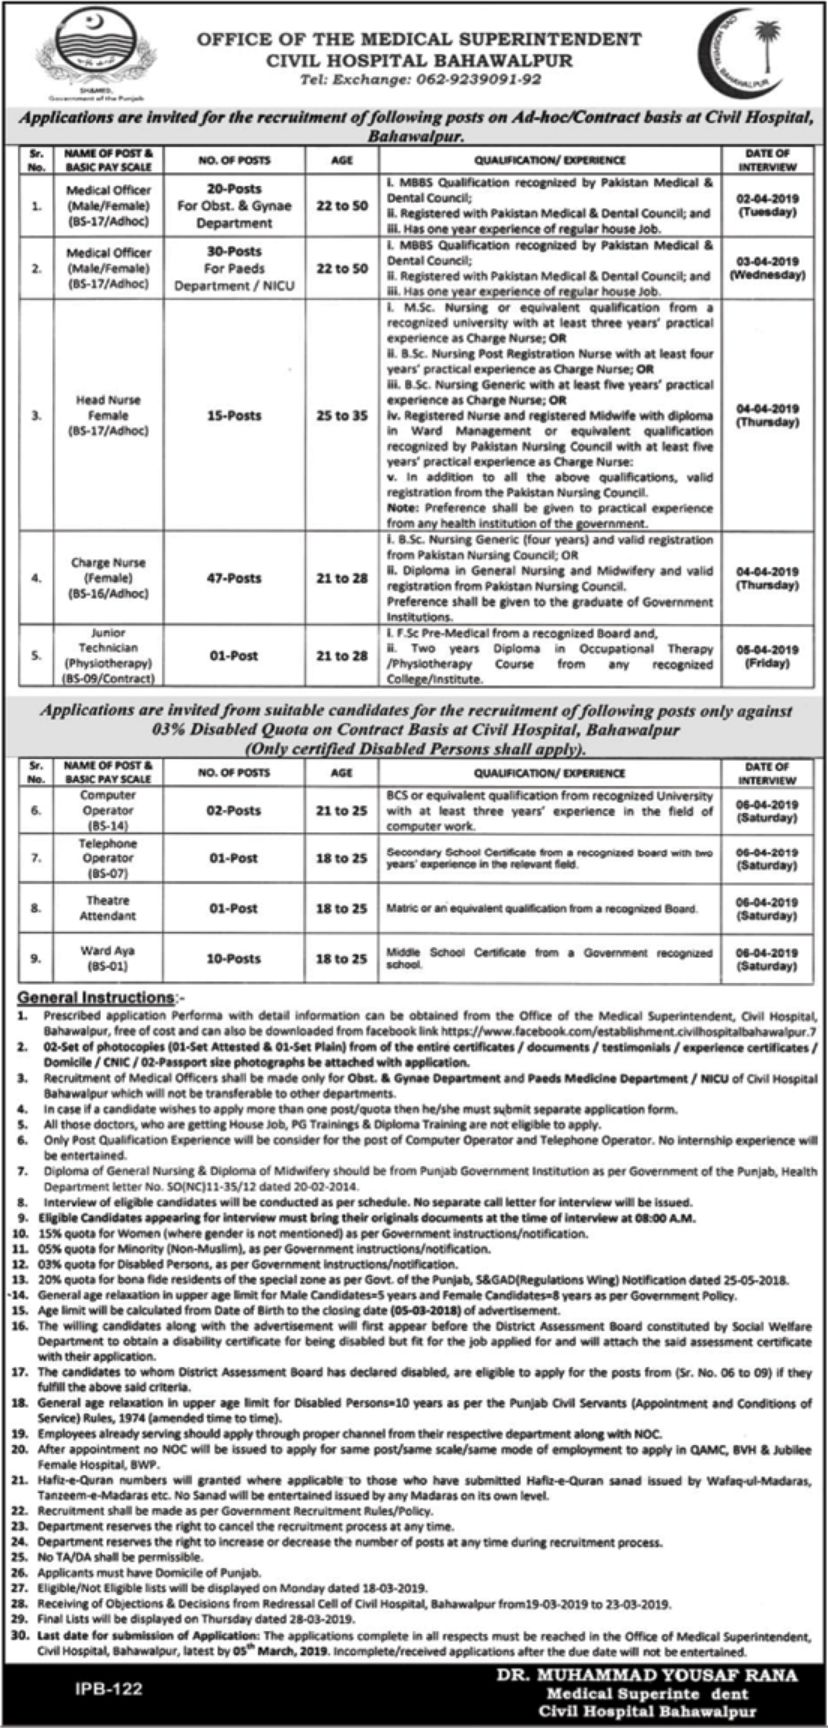 Civil Hospital Bahawalpur Jobs 2019 Latest